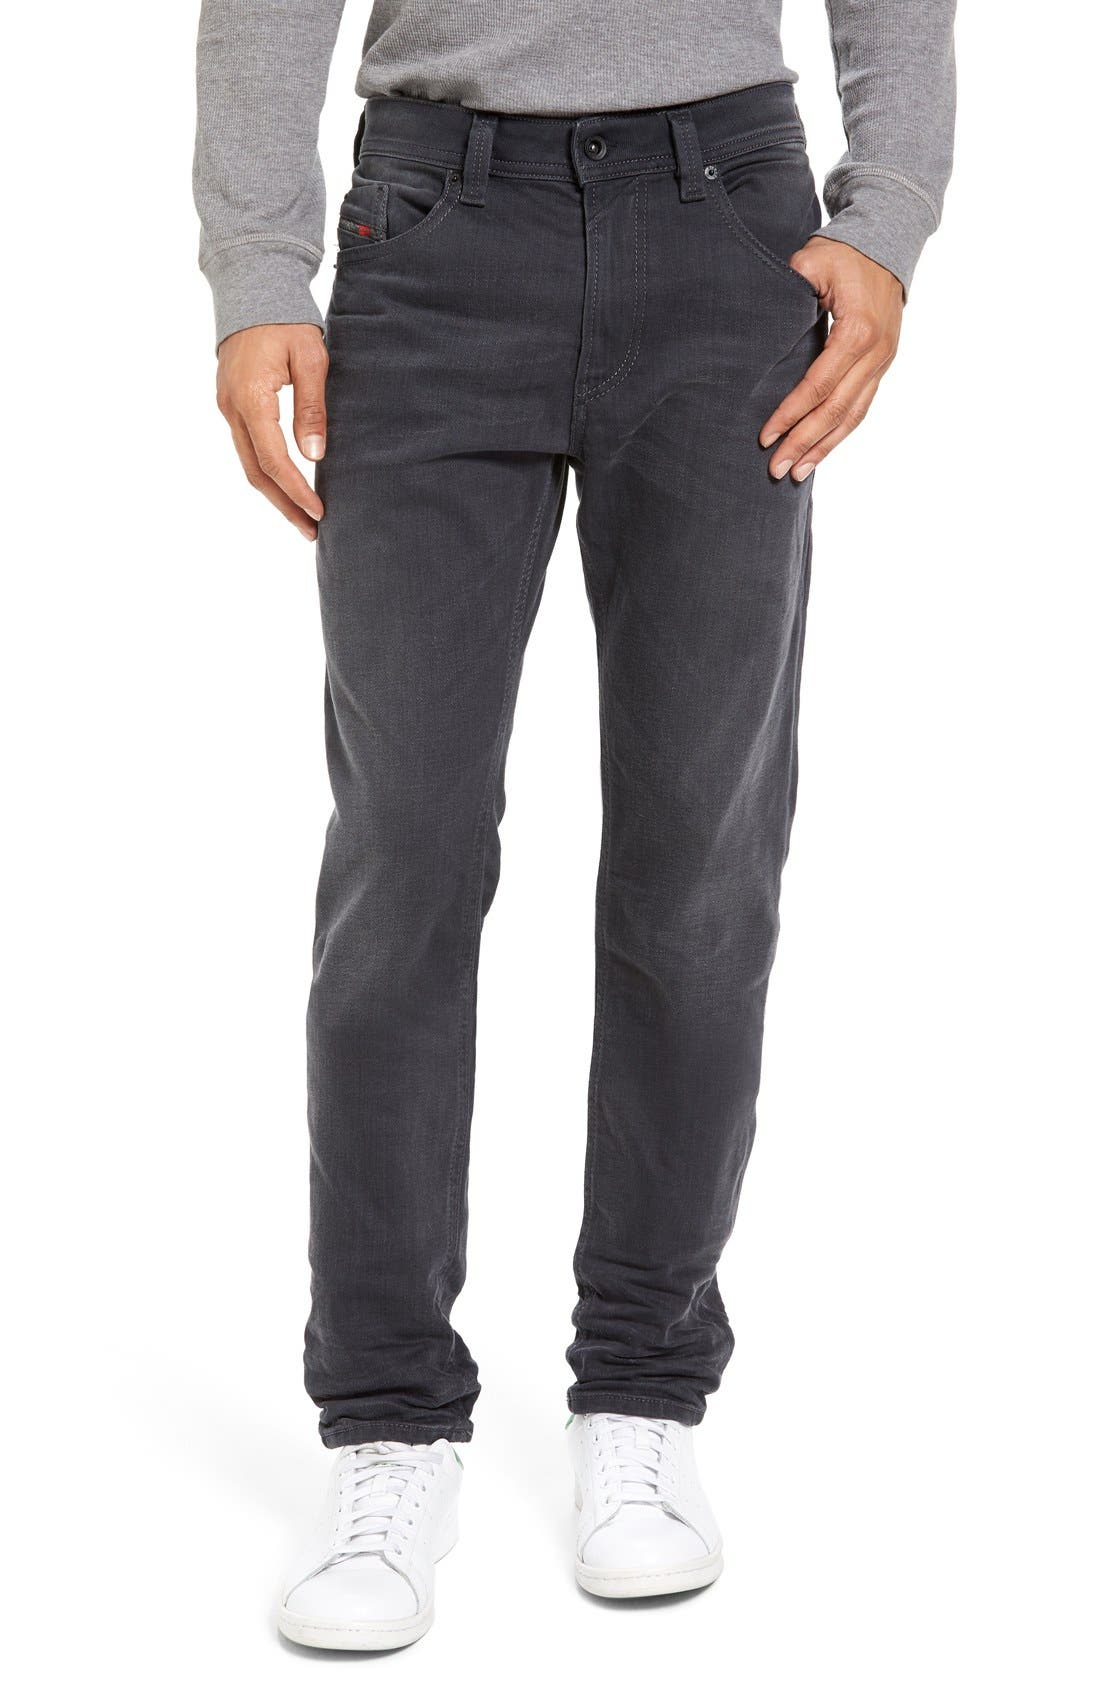 Thommer Slim Fit Jeans,                             Main thumbnail 1, color,                             859X